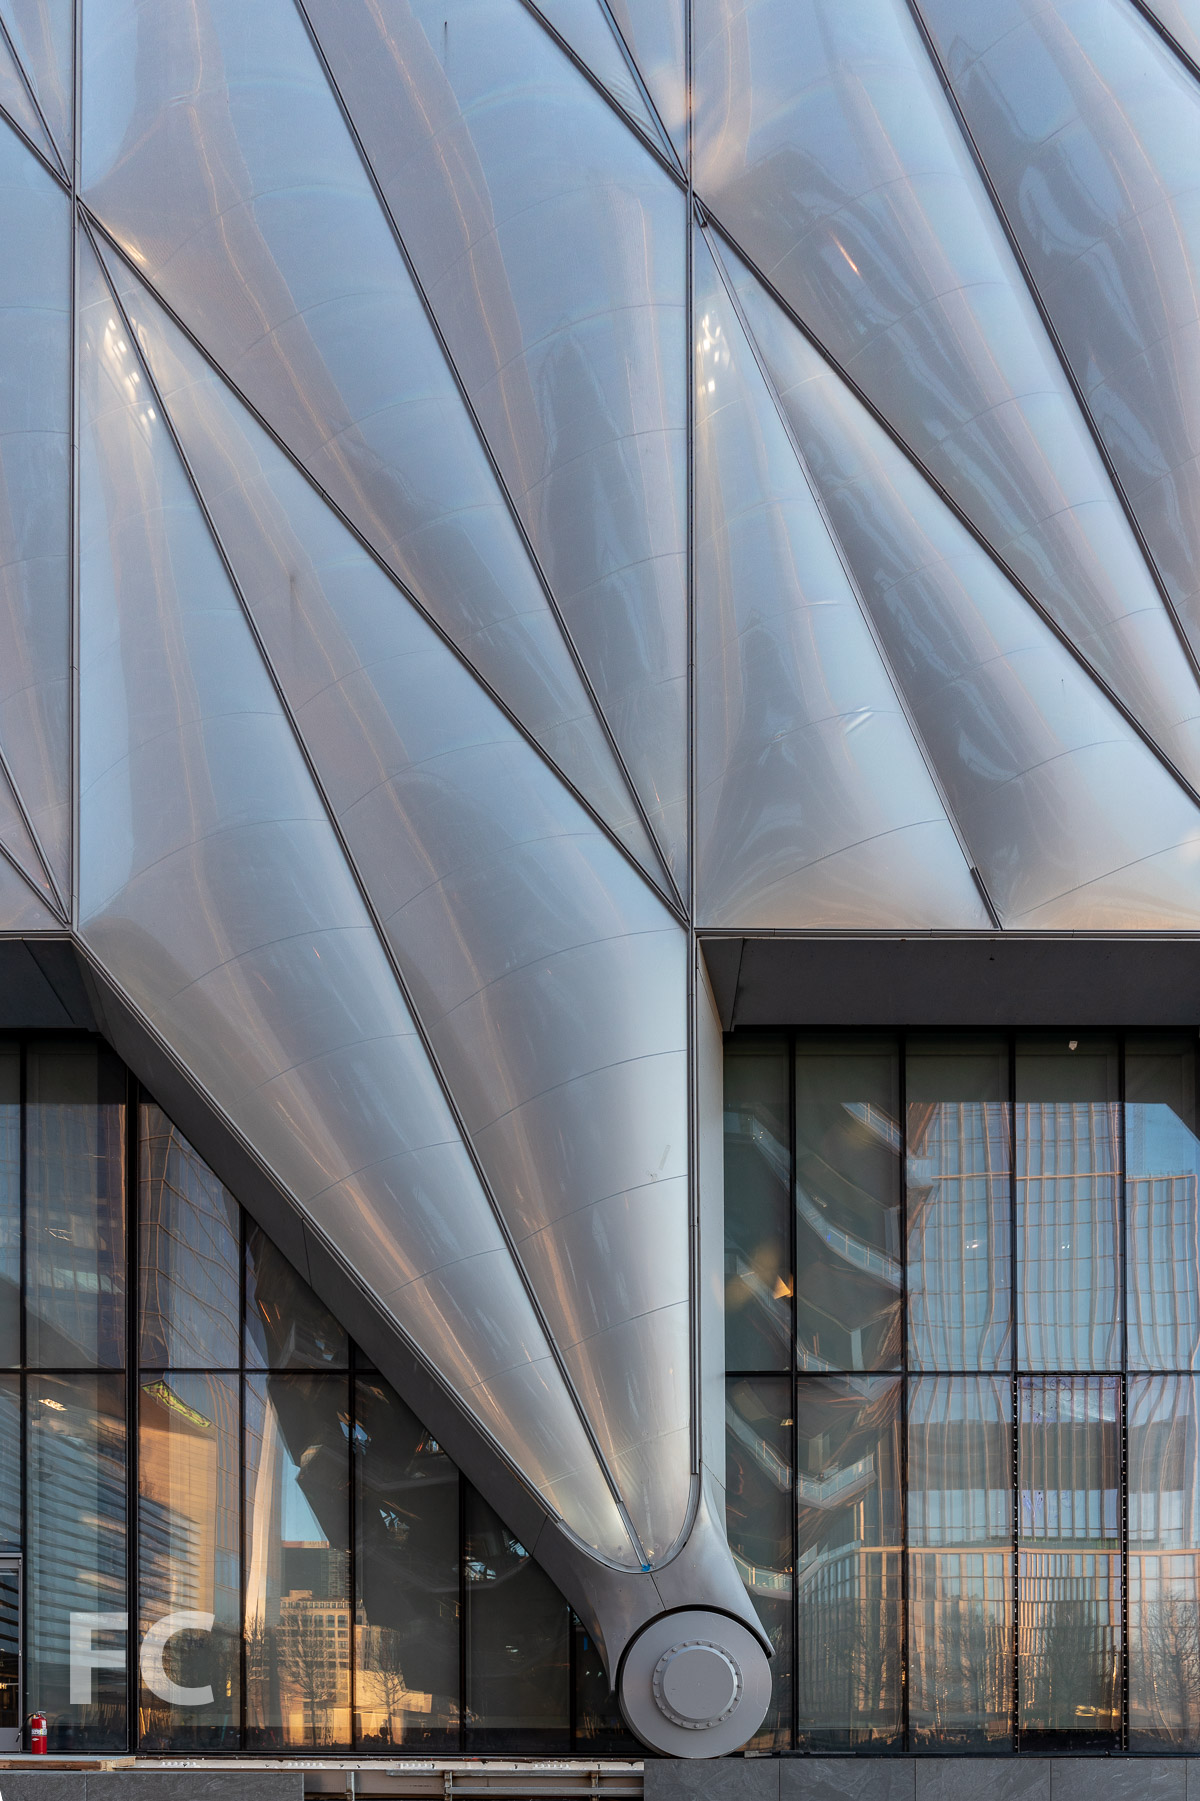 2019_03_30-The Shed at Hudson Yards-DSC09750.jpg